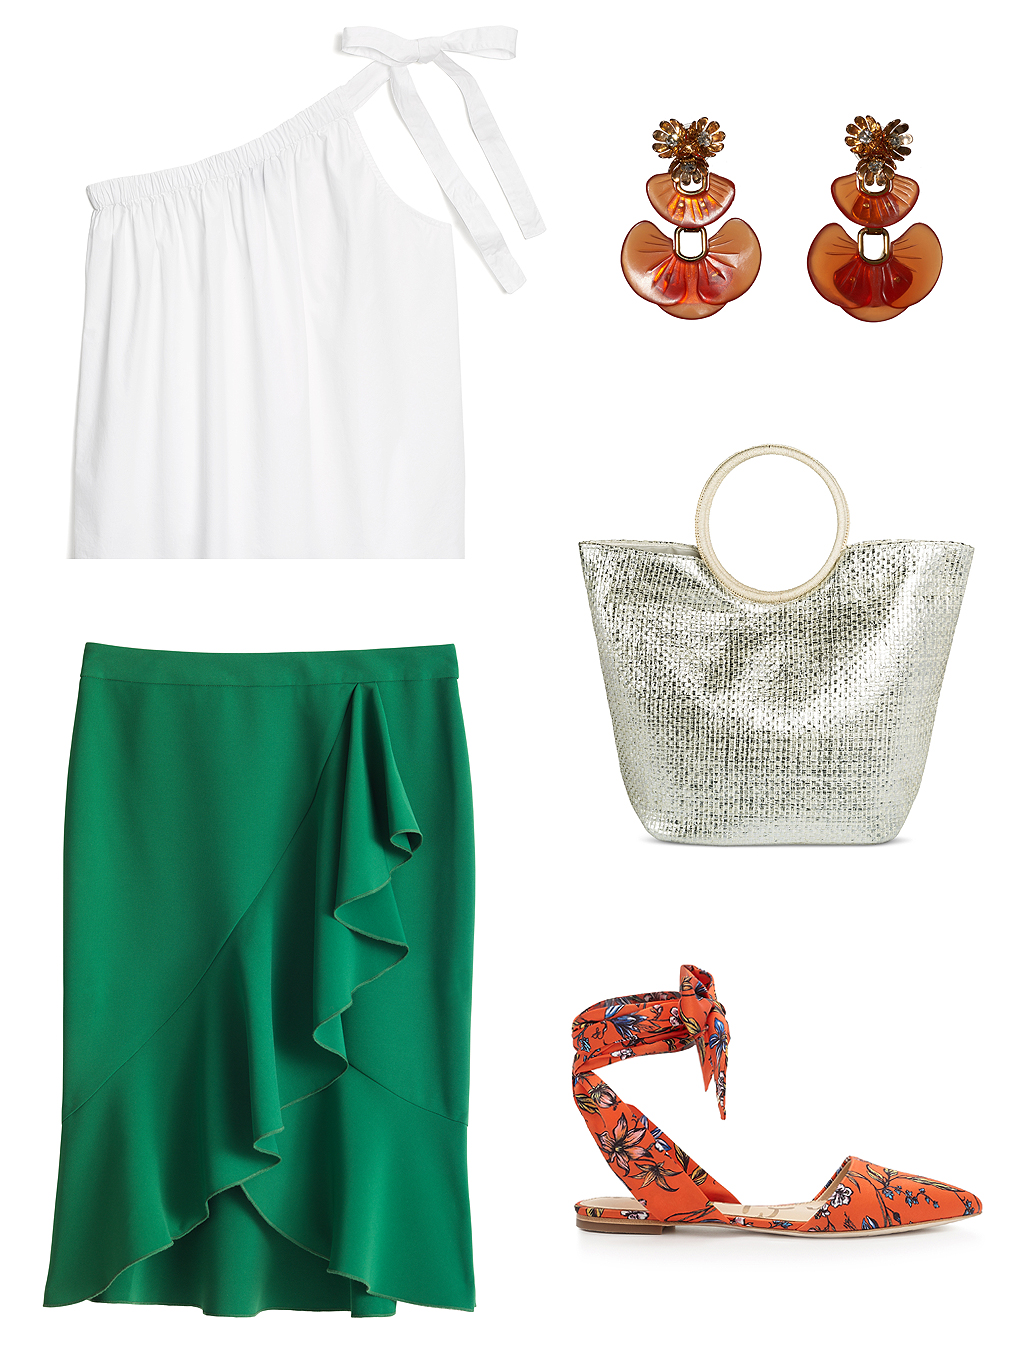 THE TREND: A Ruffle Skirt